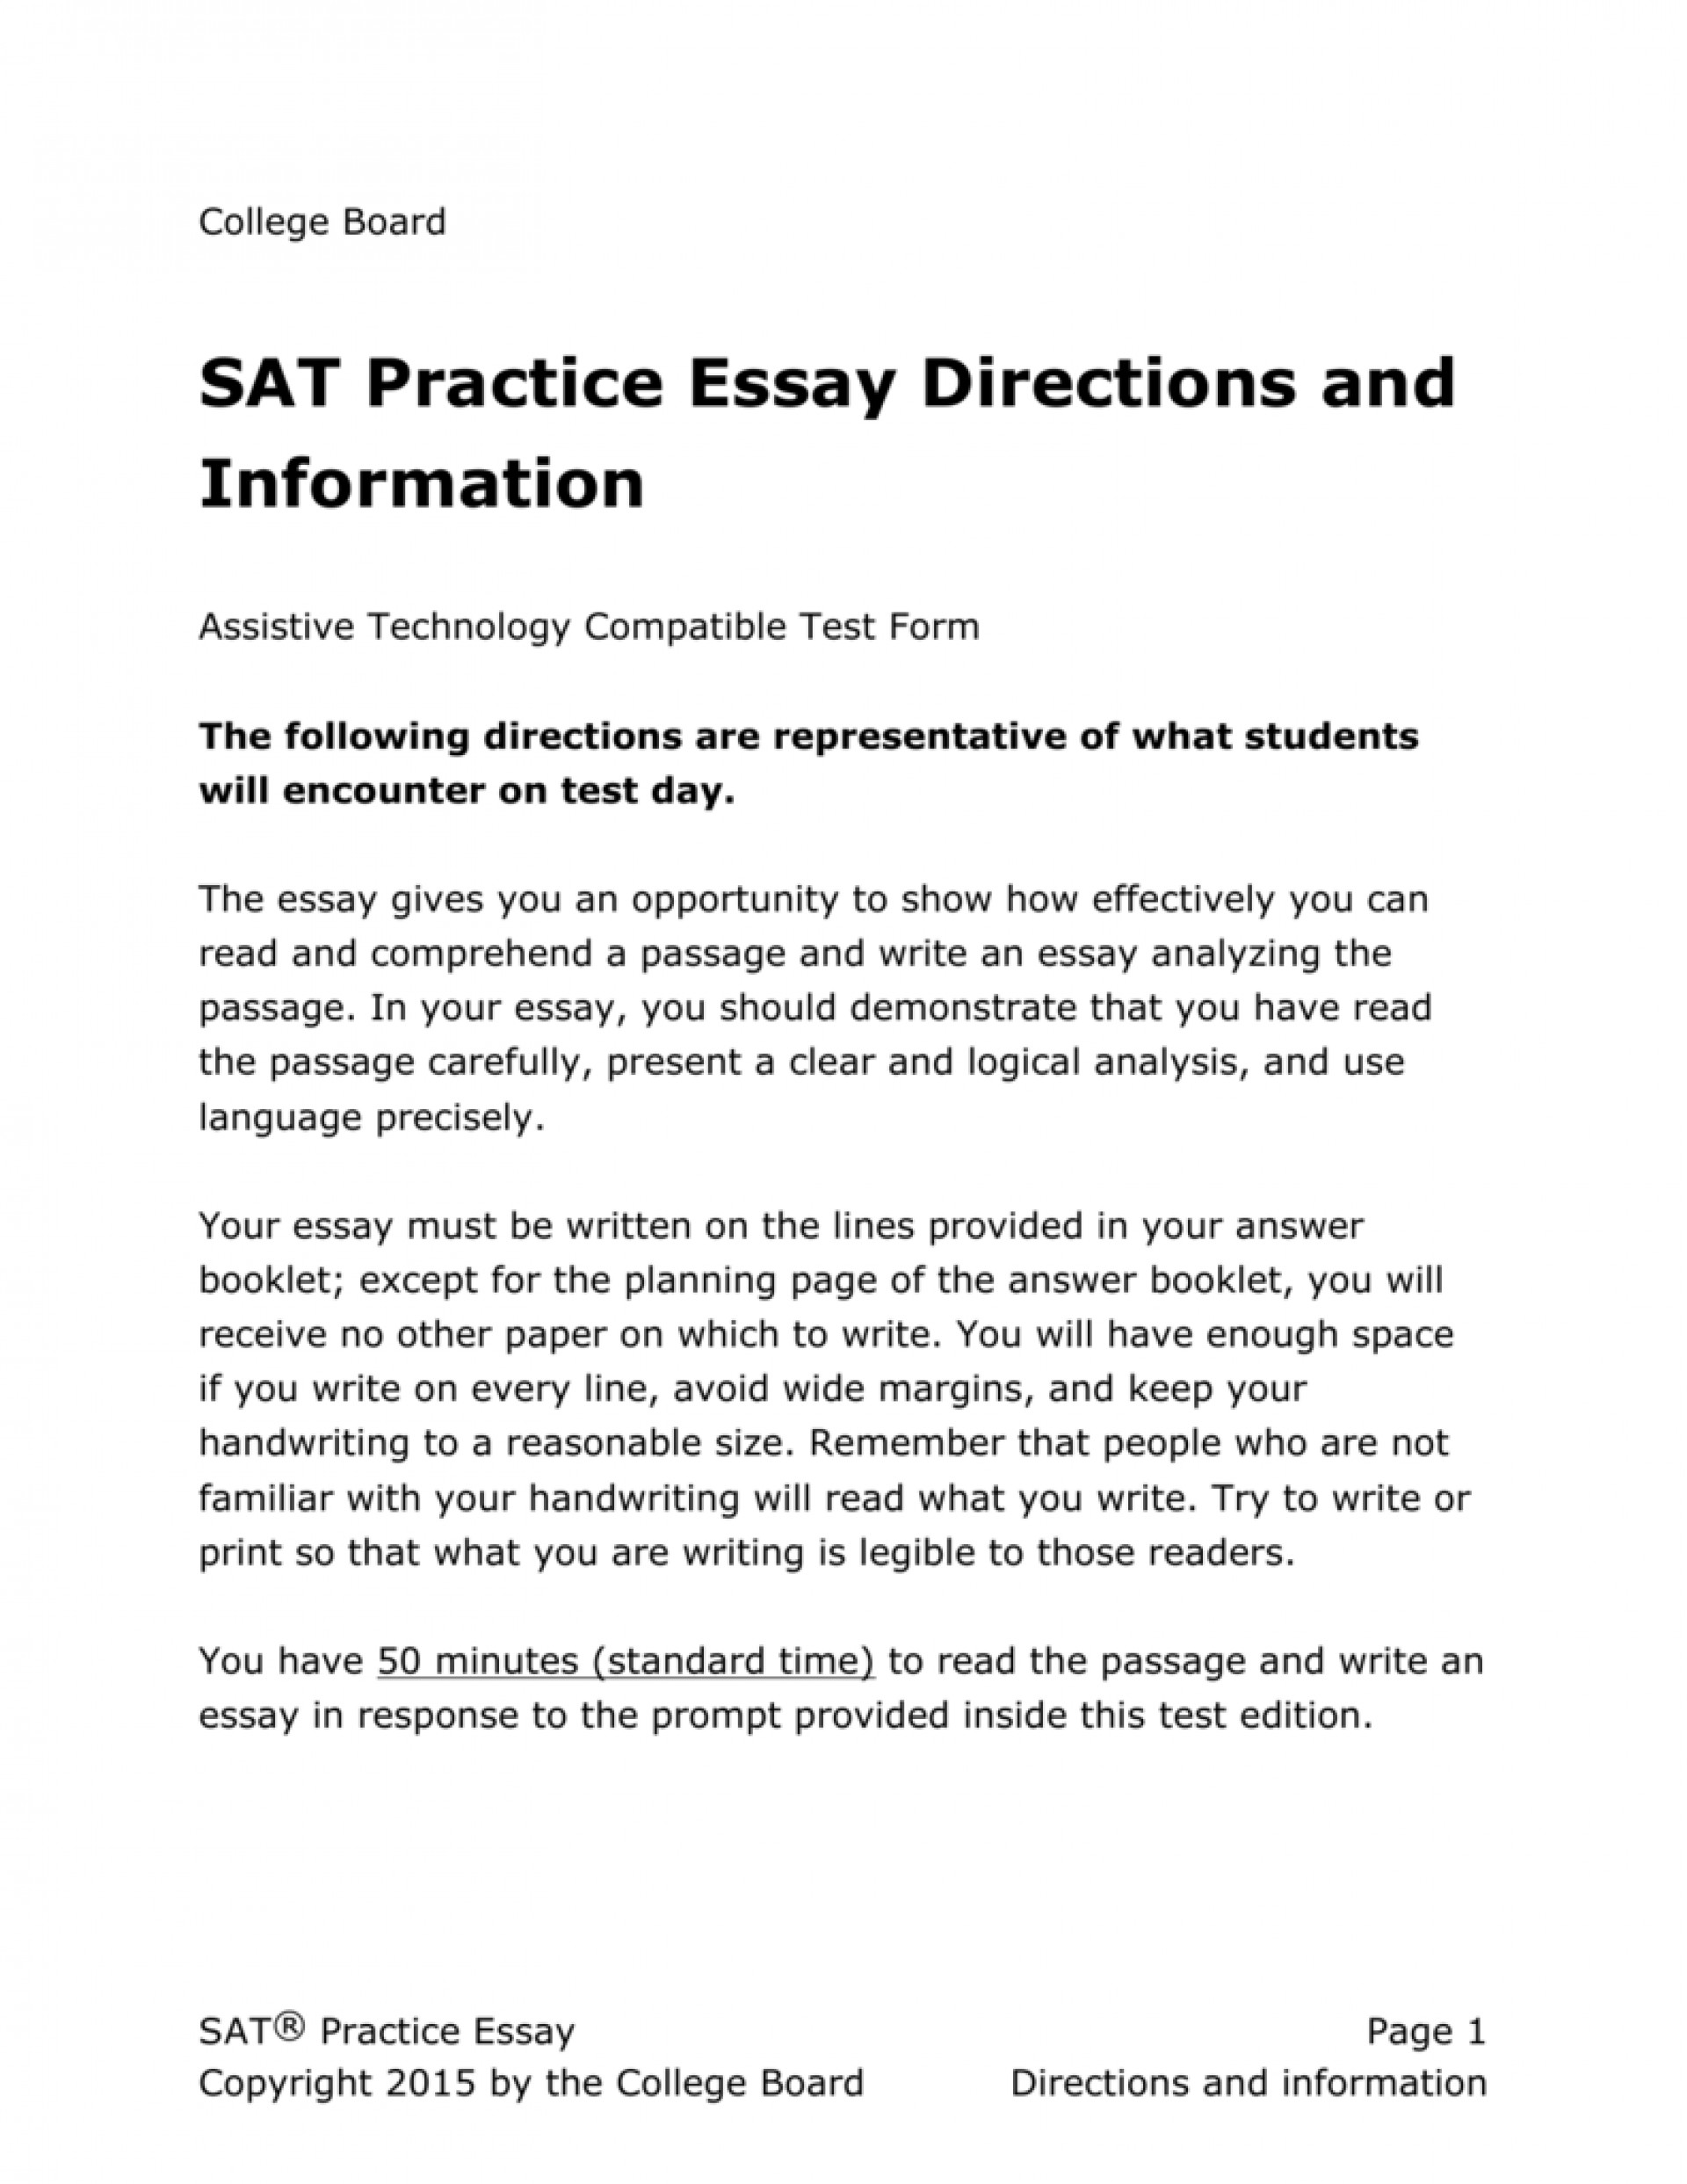 Madison : Sat practice test 1 essay